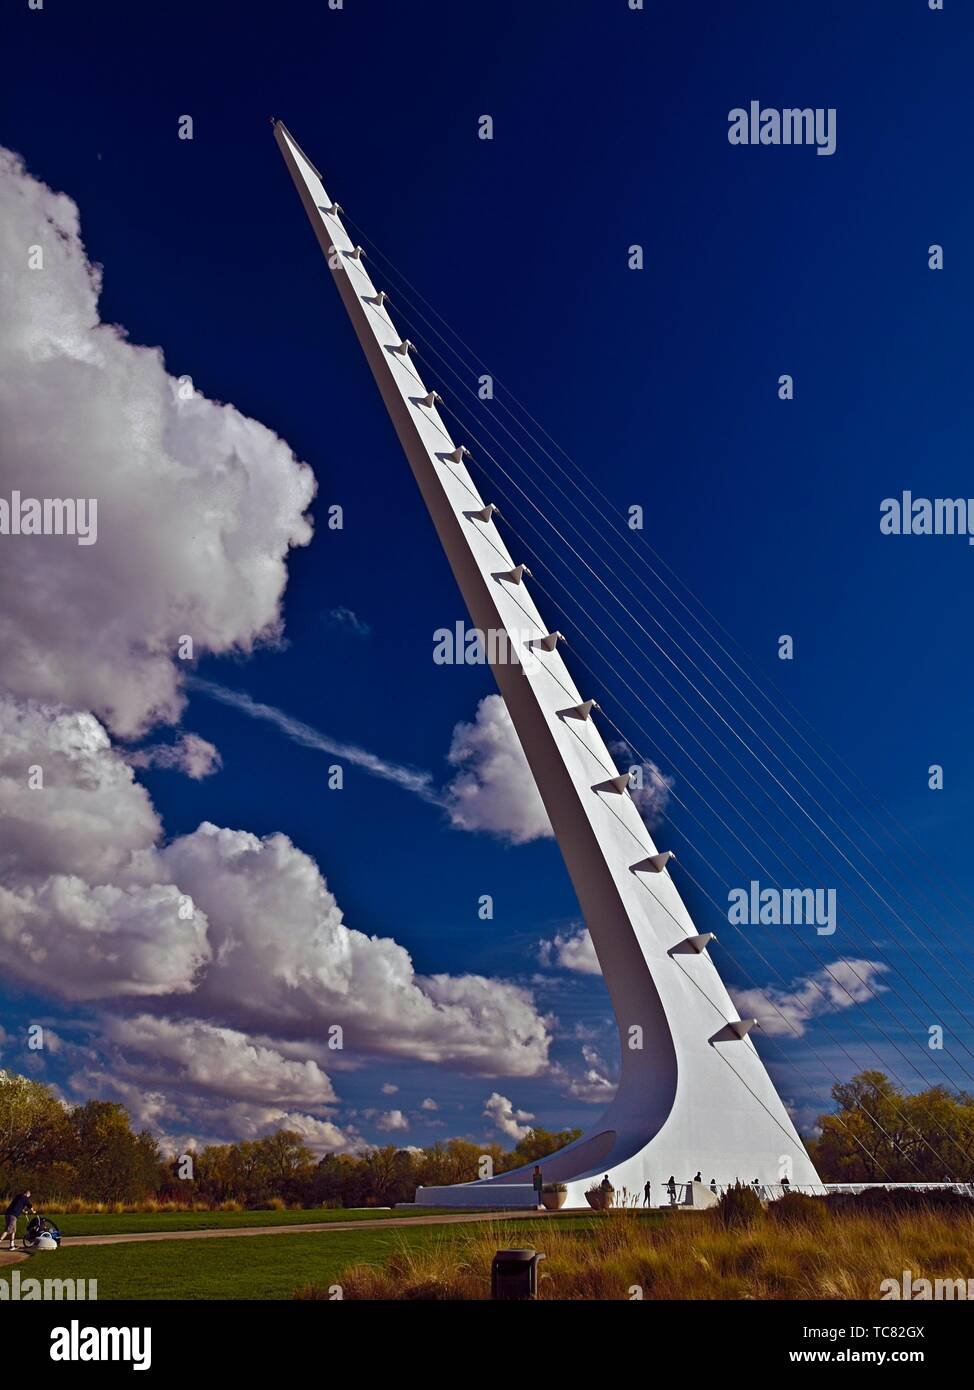 Sundial Bridge in Redding, California. This 710 foot span crosses the Sacramento River, and forms a working sundial. The glass decked bridge is used - Stock Image